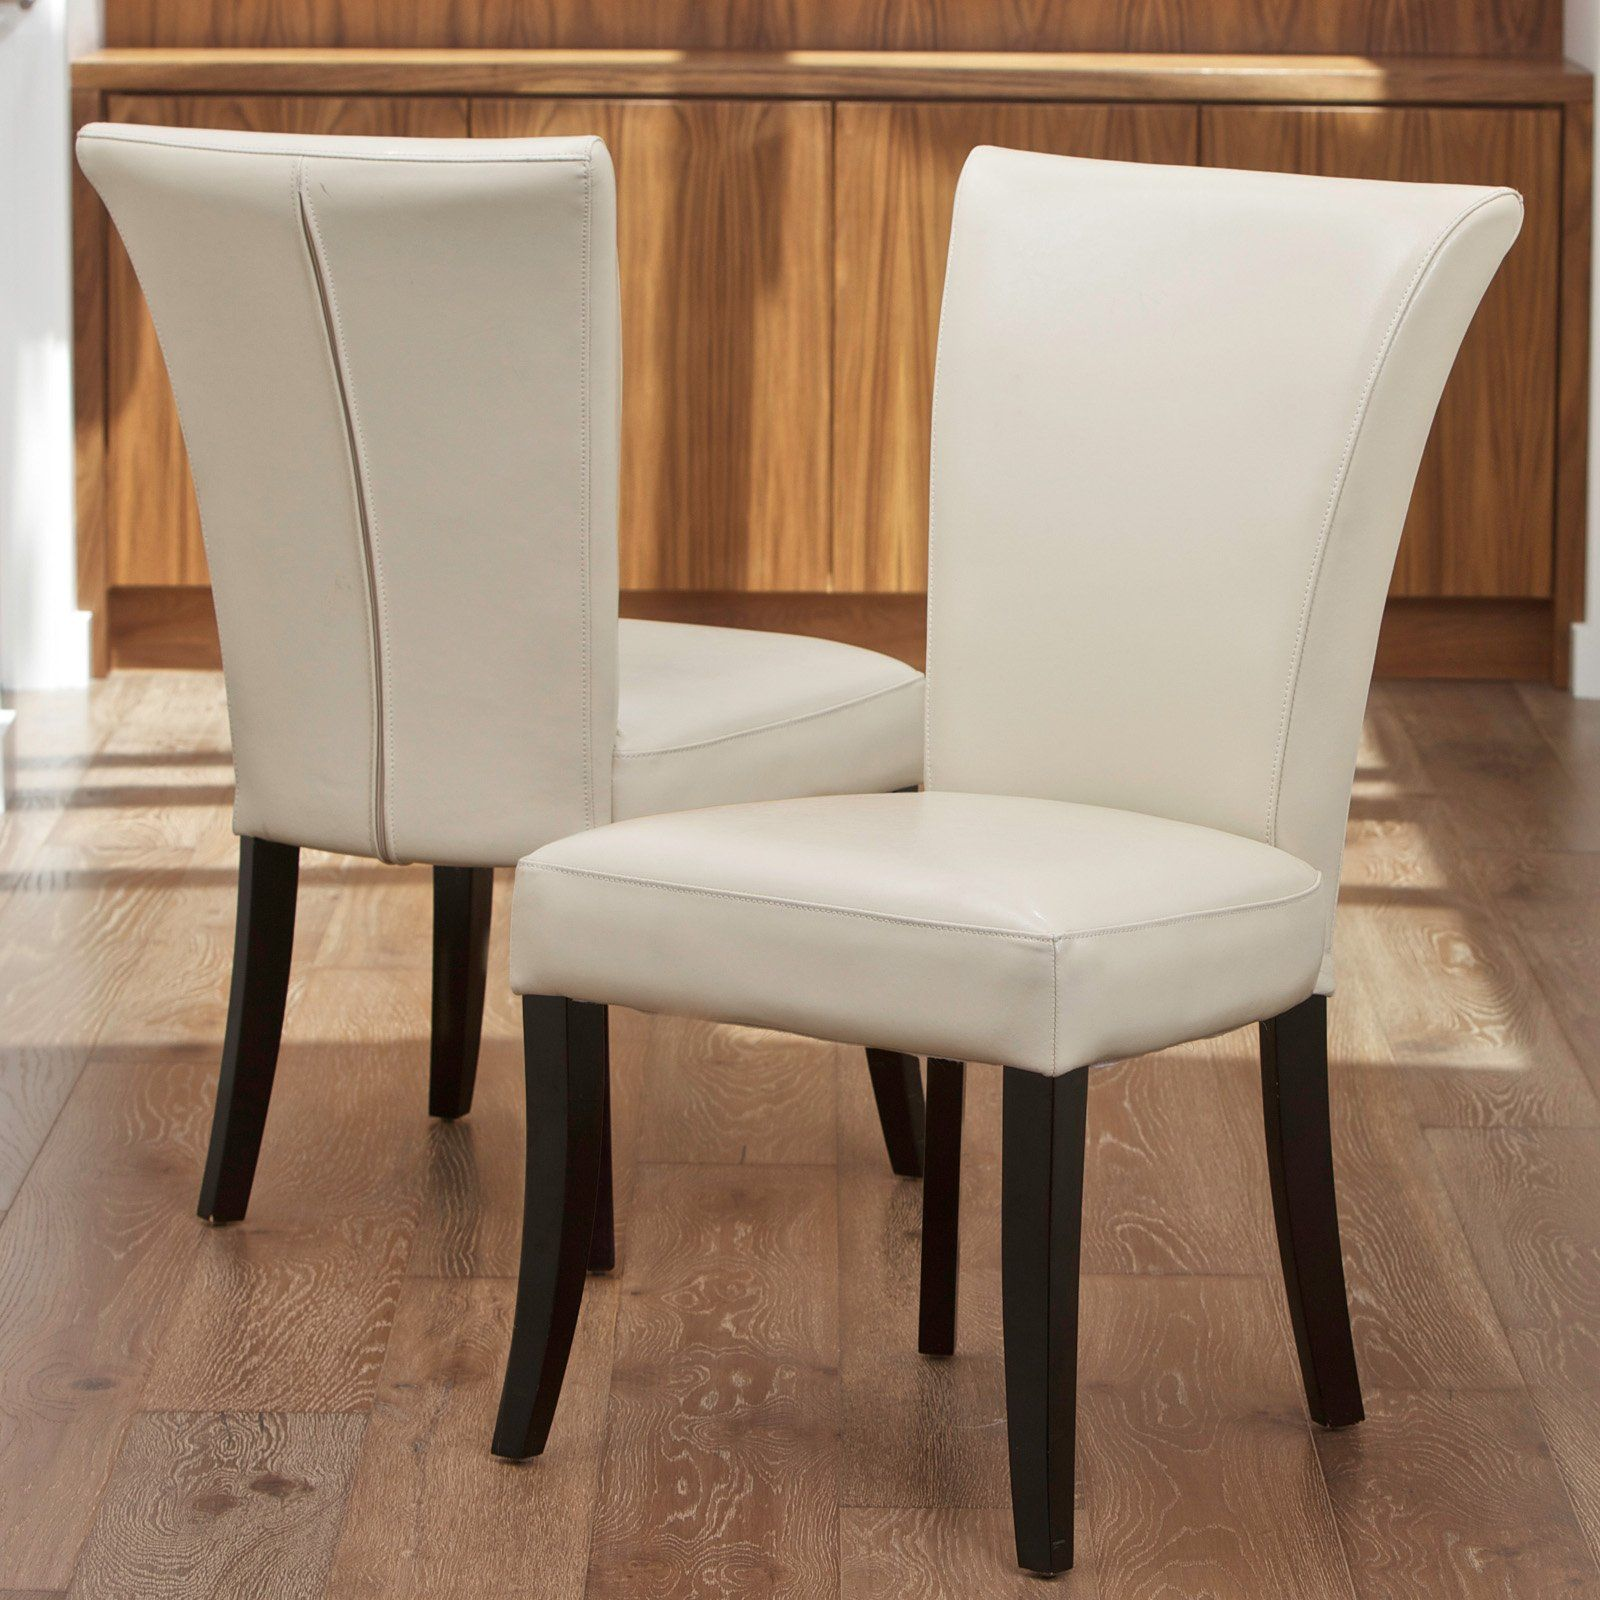 Have To Have Itstanford Ivory Leather Dining Chairs  2 Pack Mesmerizing Ivory Leather Dining Room Chairs Design Ideas